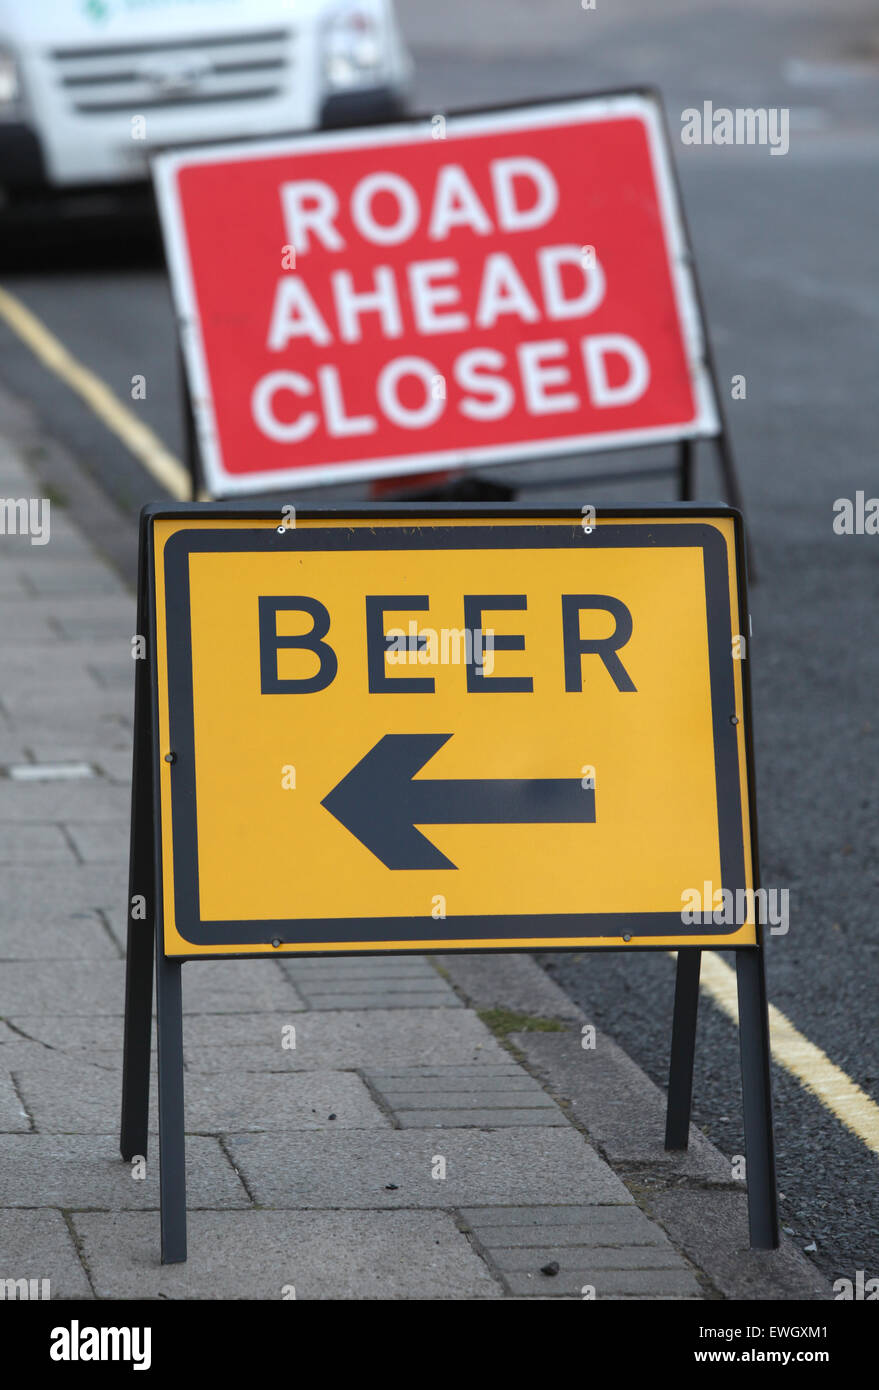 Roadworks sign pointing to beer at a nearby pub during a road closure - Stock Image